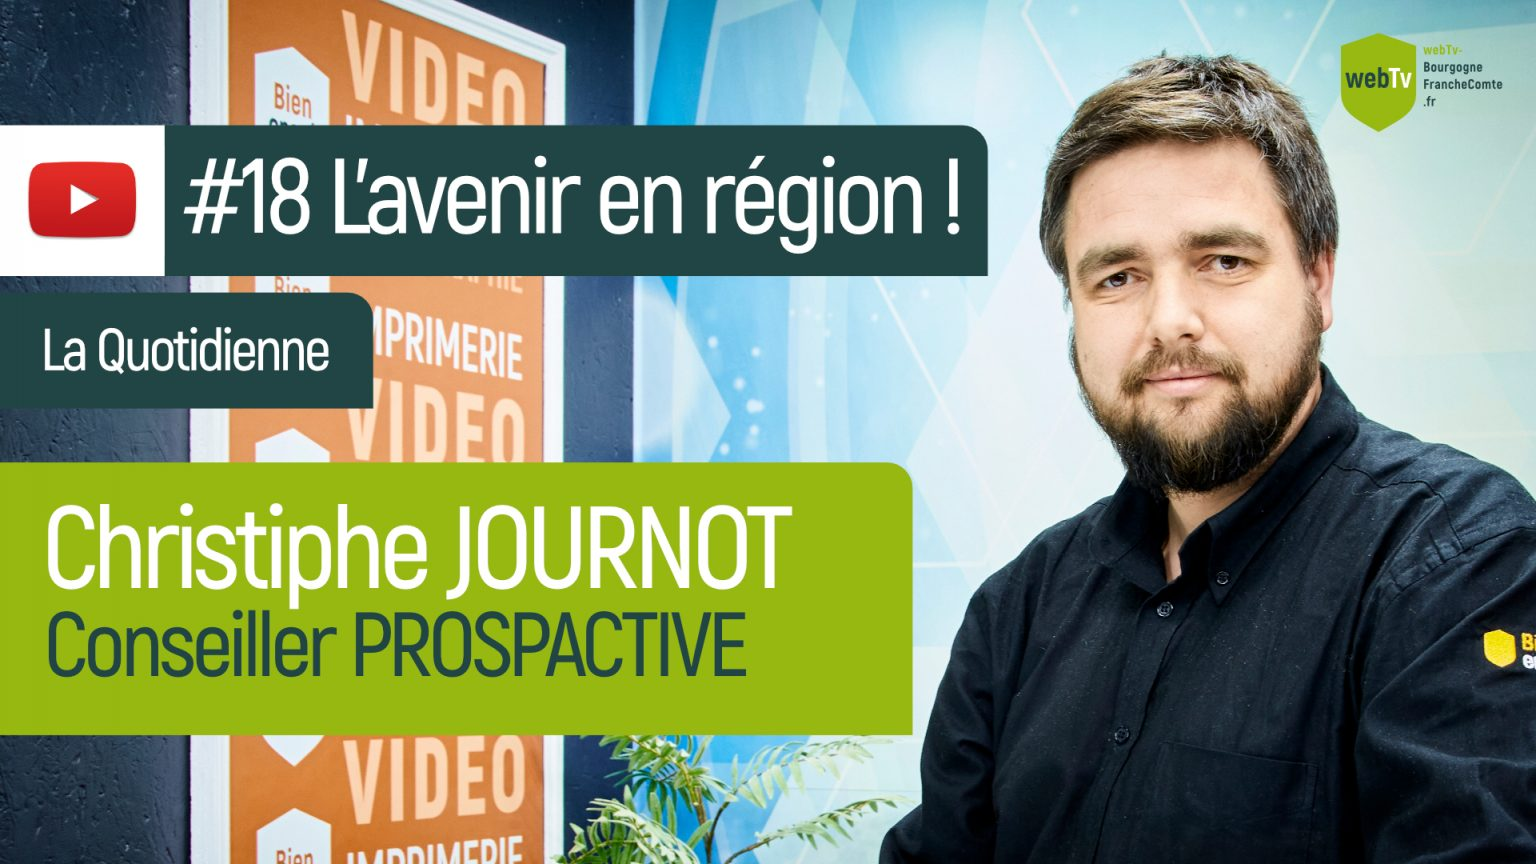 PROSPACTIVE Christophe journot